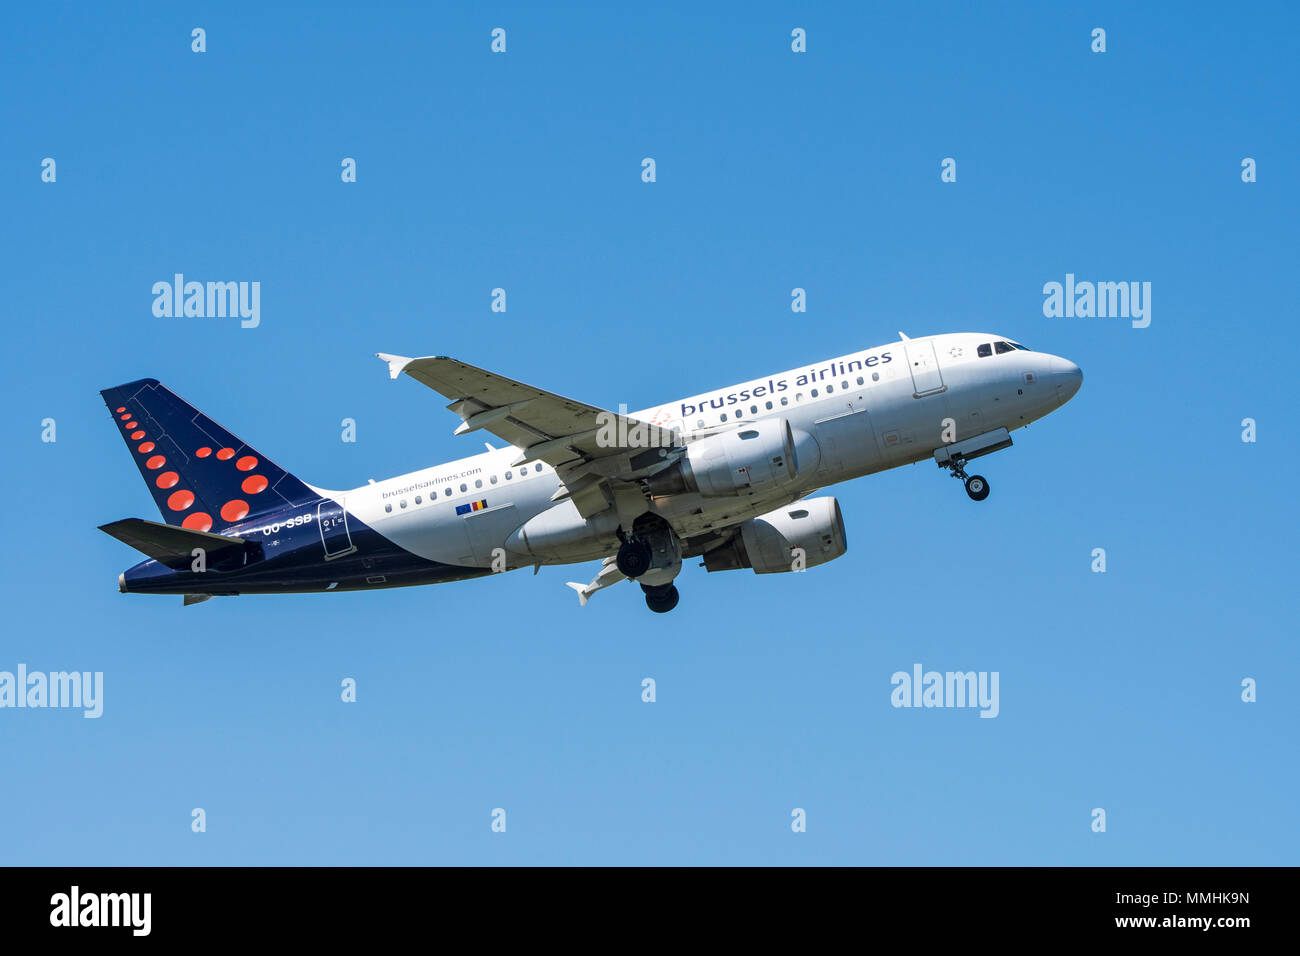 Airbus A319-111, narrow-body, commercial passenger twin-engine jet airliner from Belgian Brussels Airlines in flight against blue sky - Stock Image